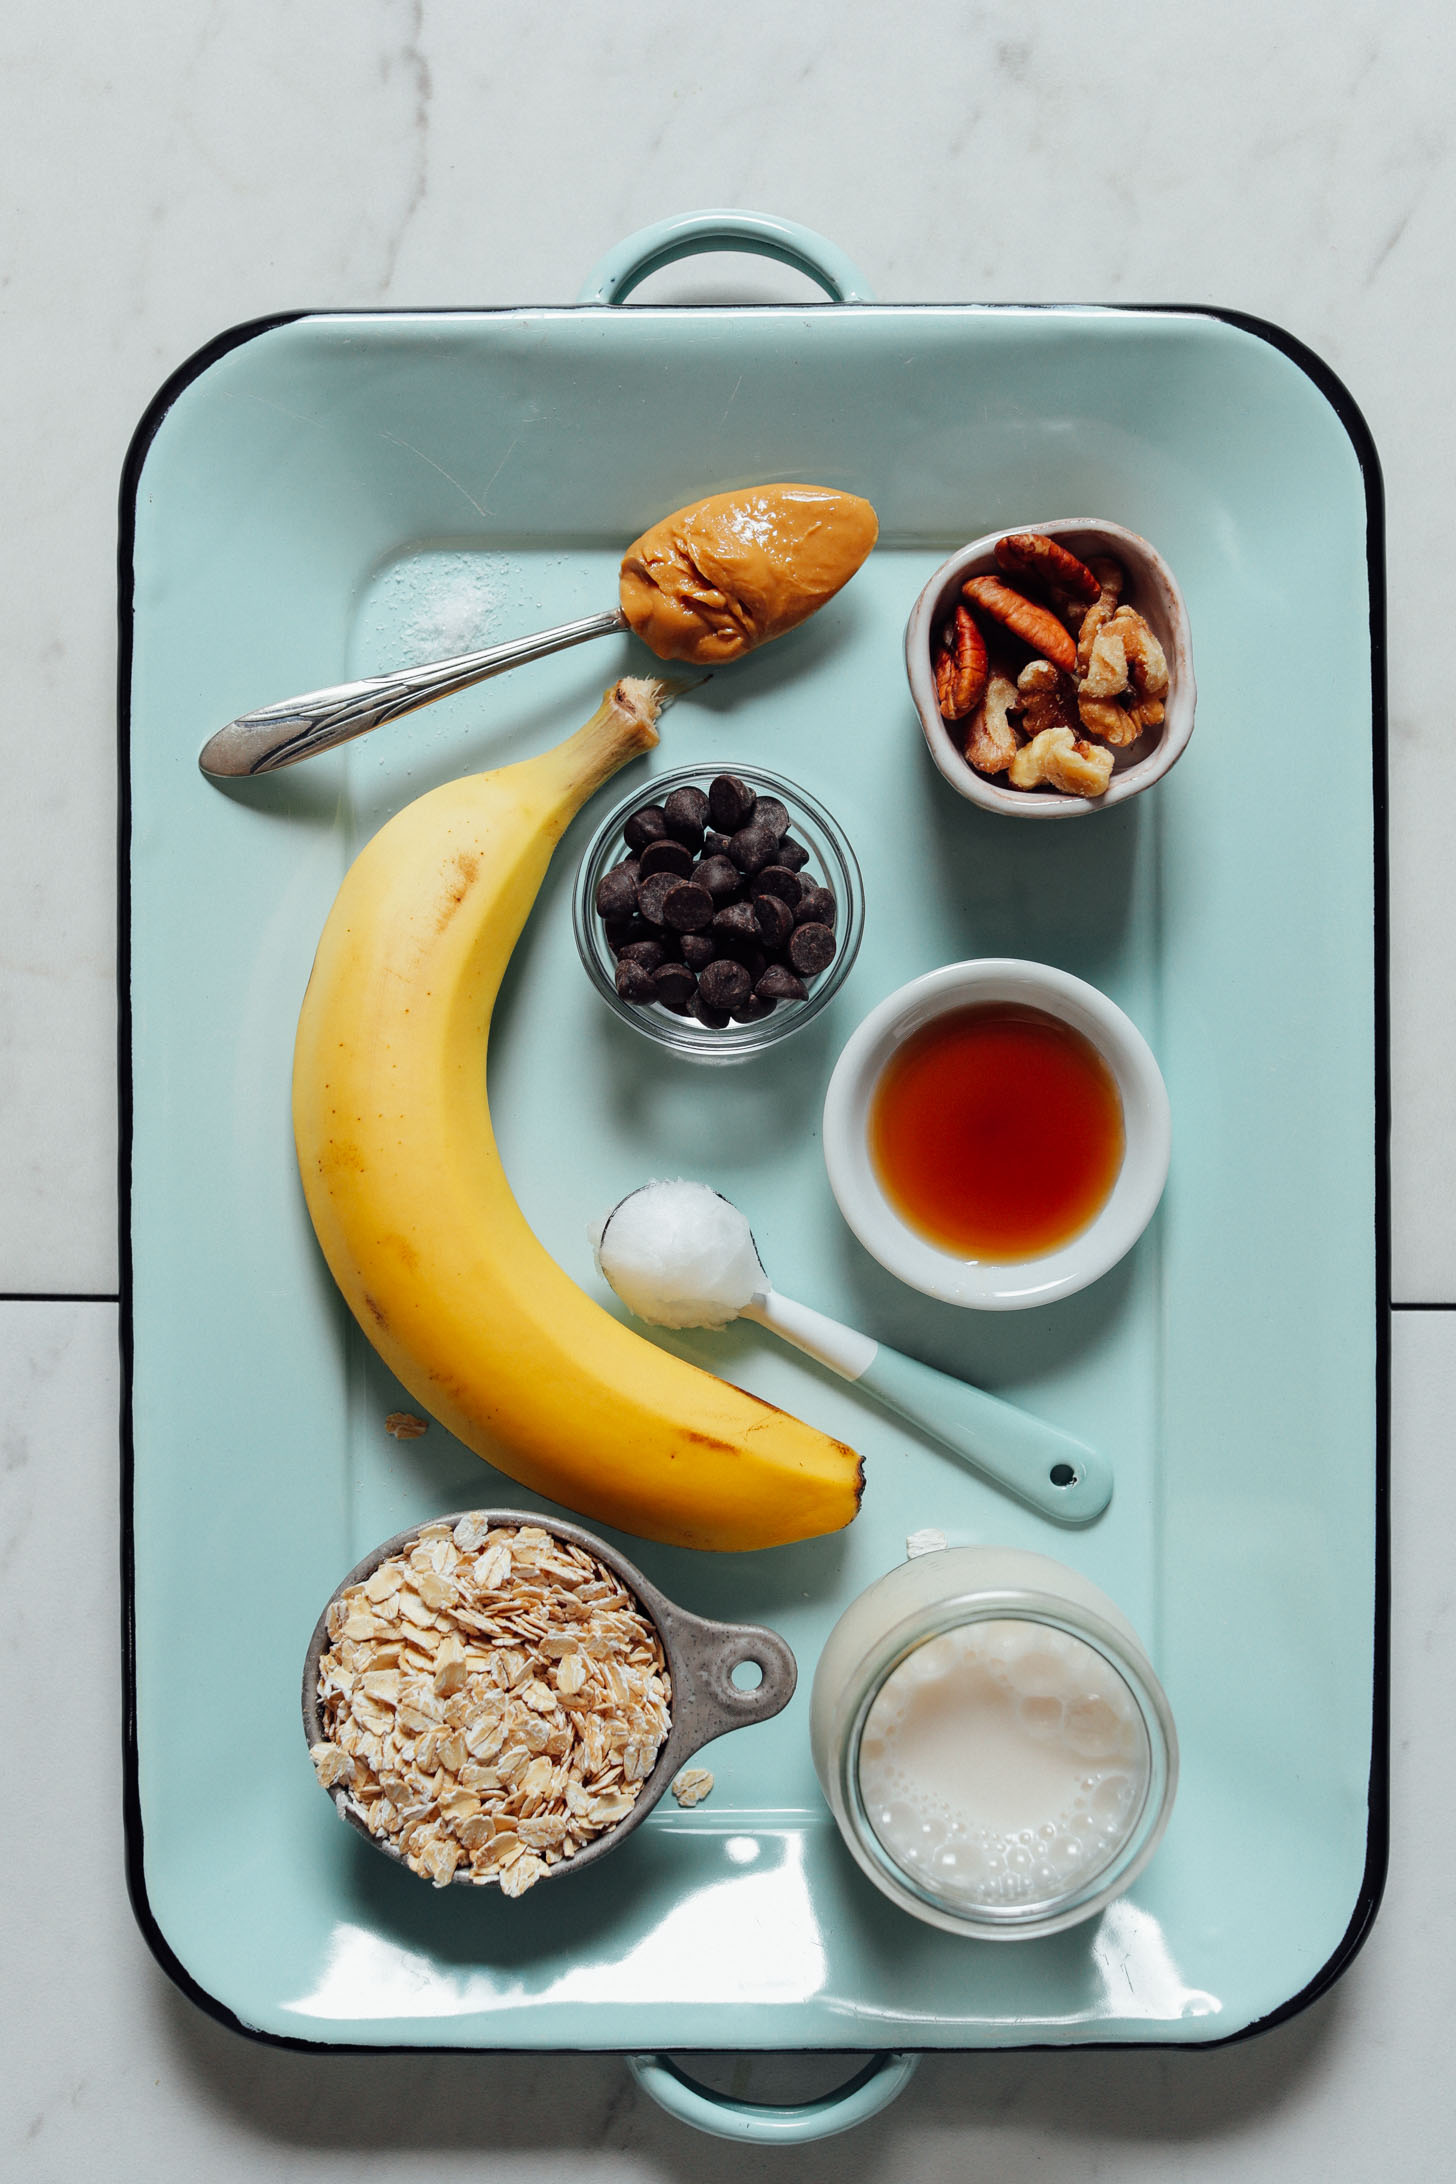 Overhead image of banana baked oatmeal ingredients on a blue tray, including oats, banana, and chocolate